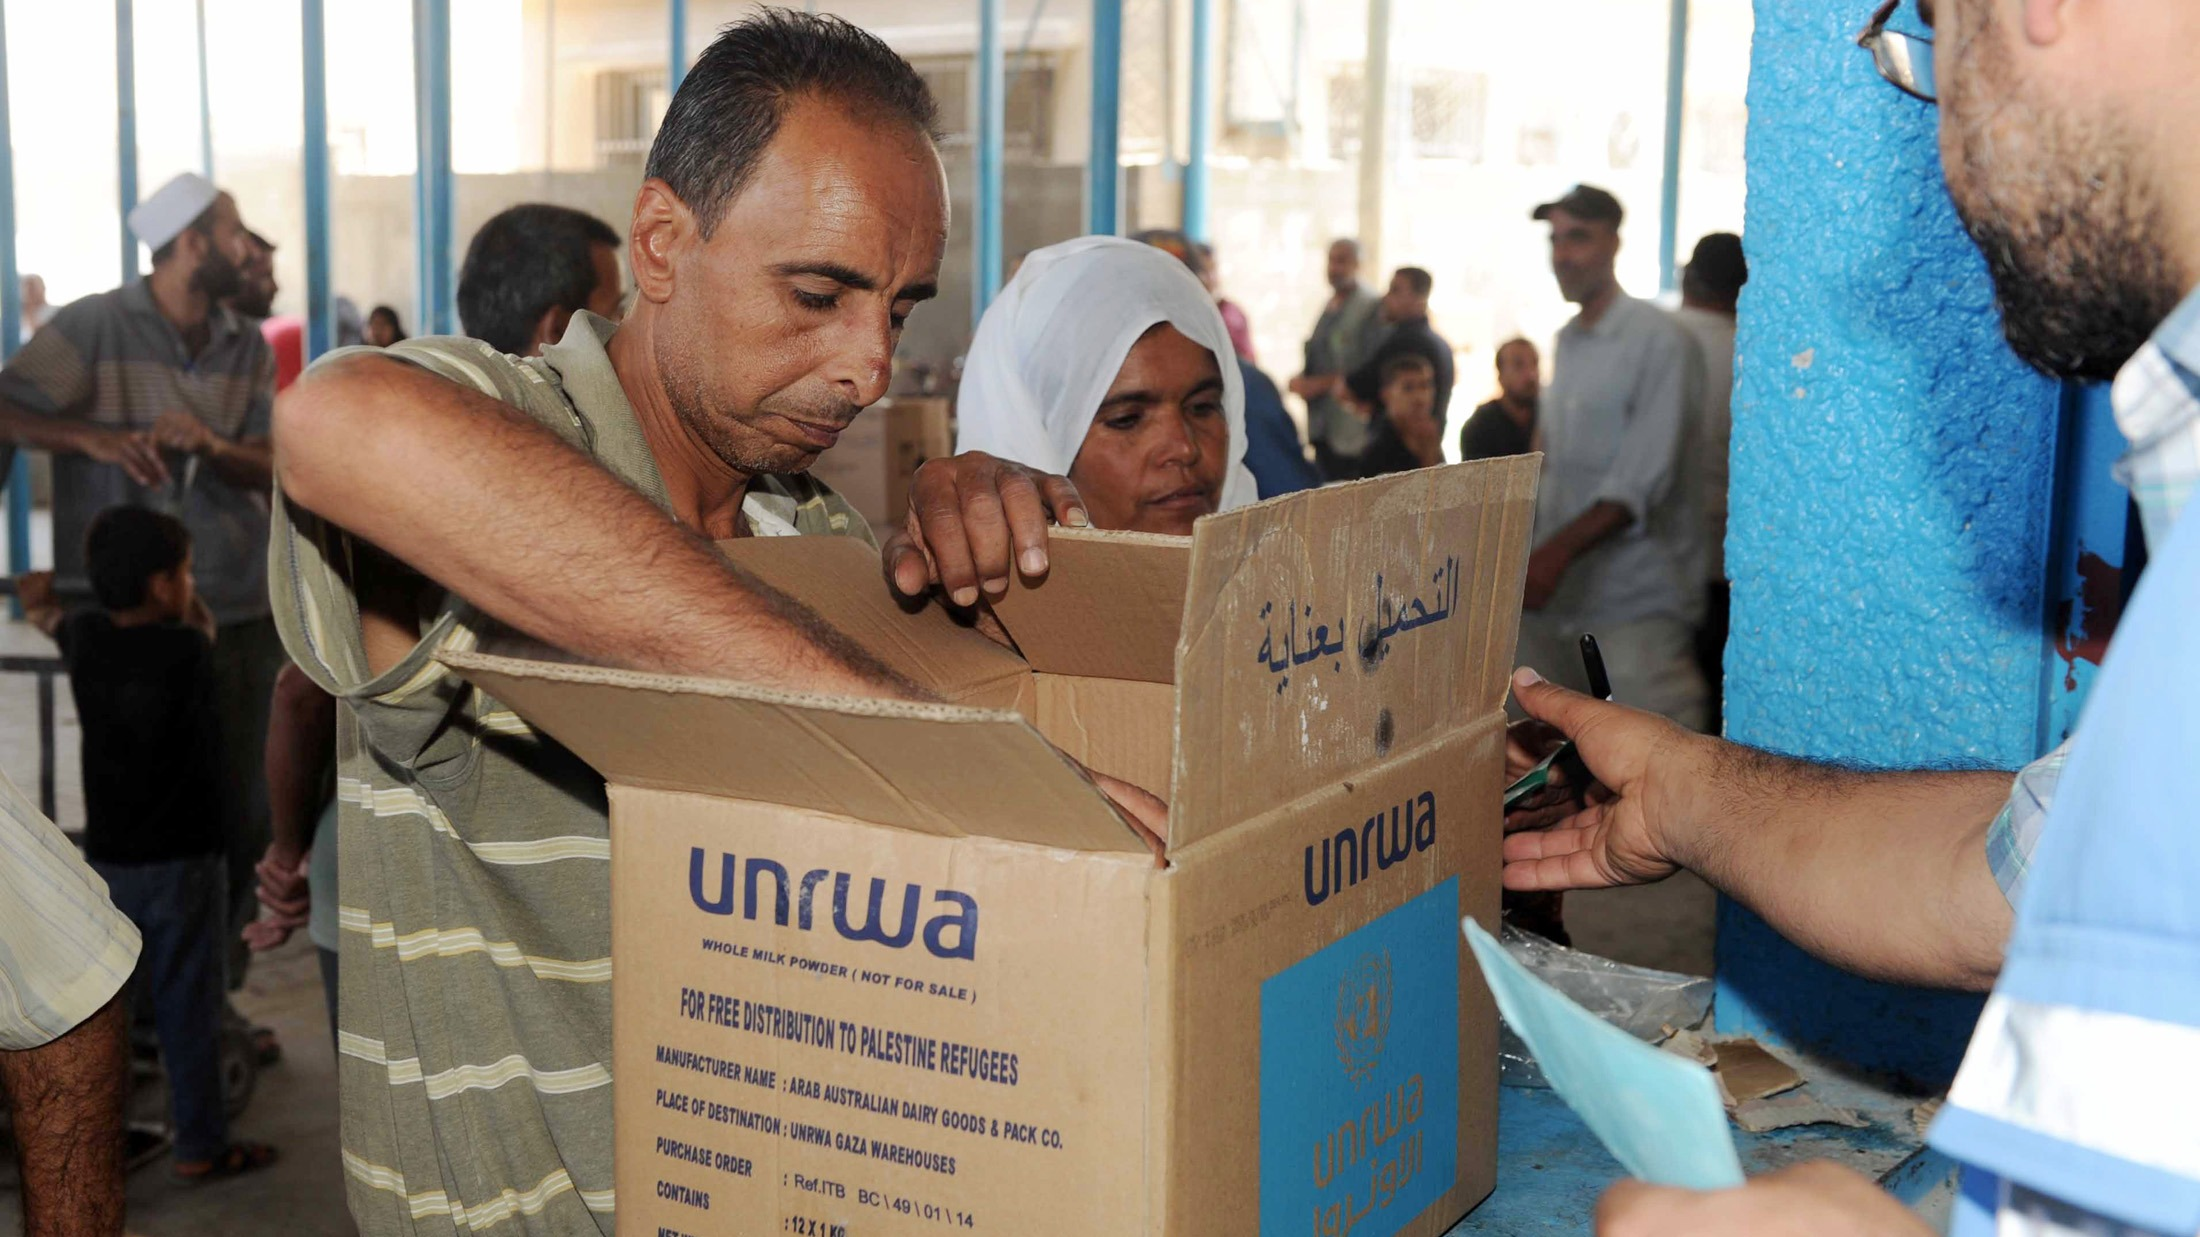 As part of its regular operations, UNRWA continues to distribute food to 830,000 refugees in Gaza. Beneficiaries at the